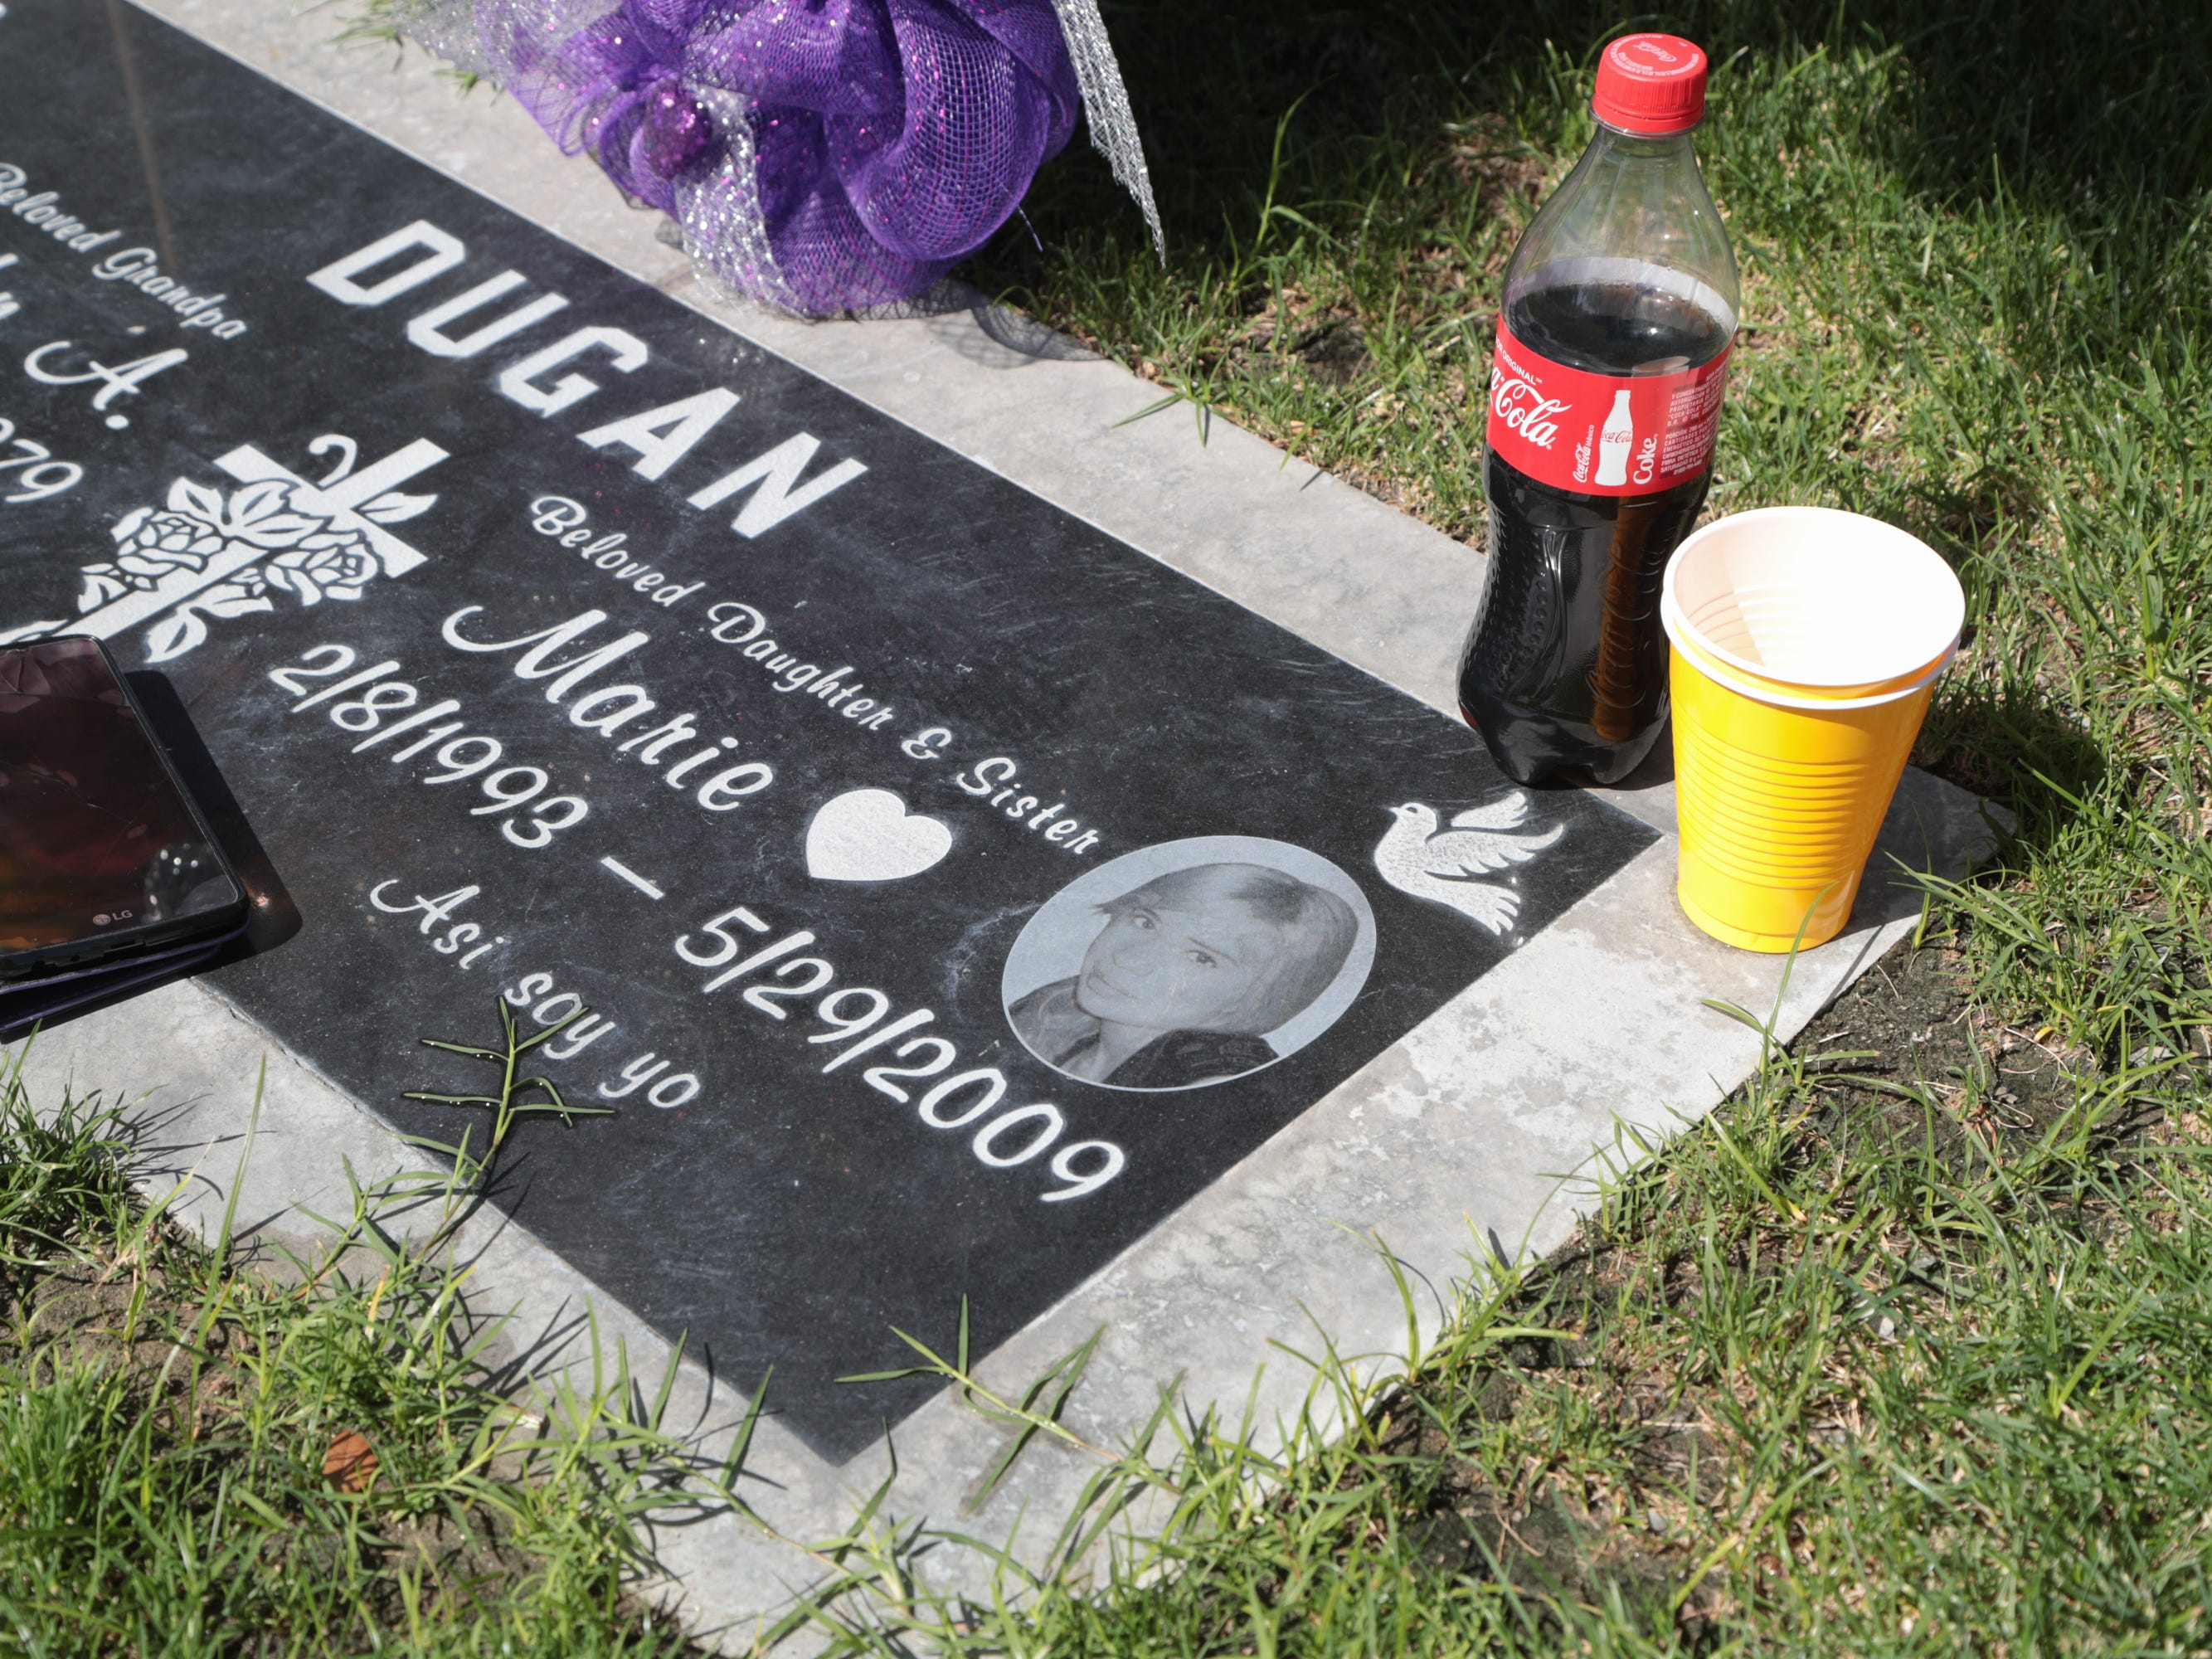 Michelle Dugan-Delgado visits the grave of her sister Marie Dugan at the Coachella Valley Cemetery in Coachella. Marie died of an asthma attack in El Centro in 2009.